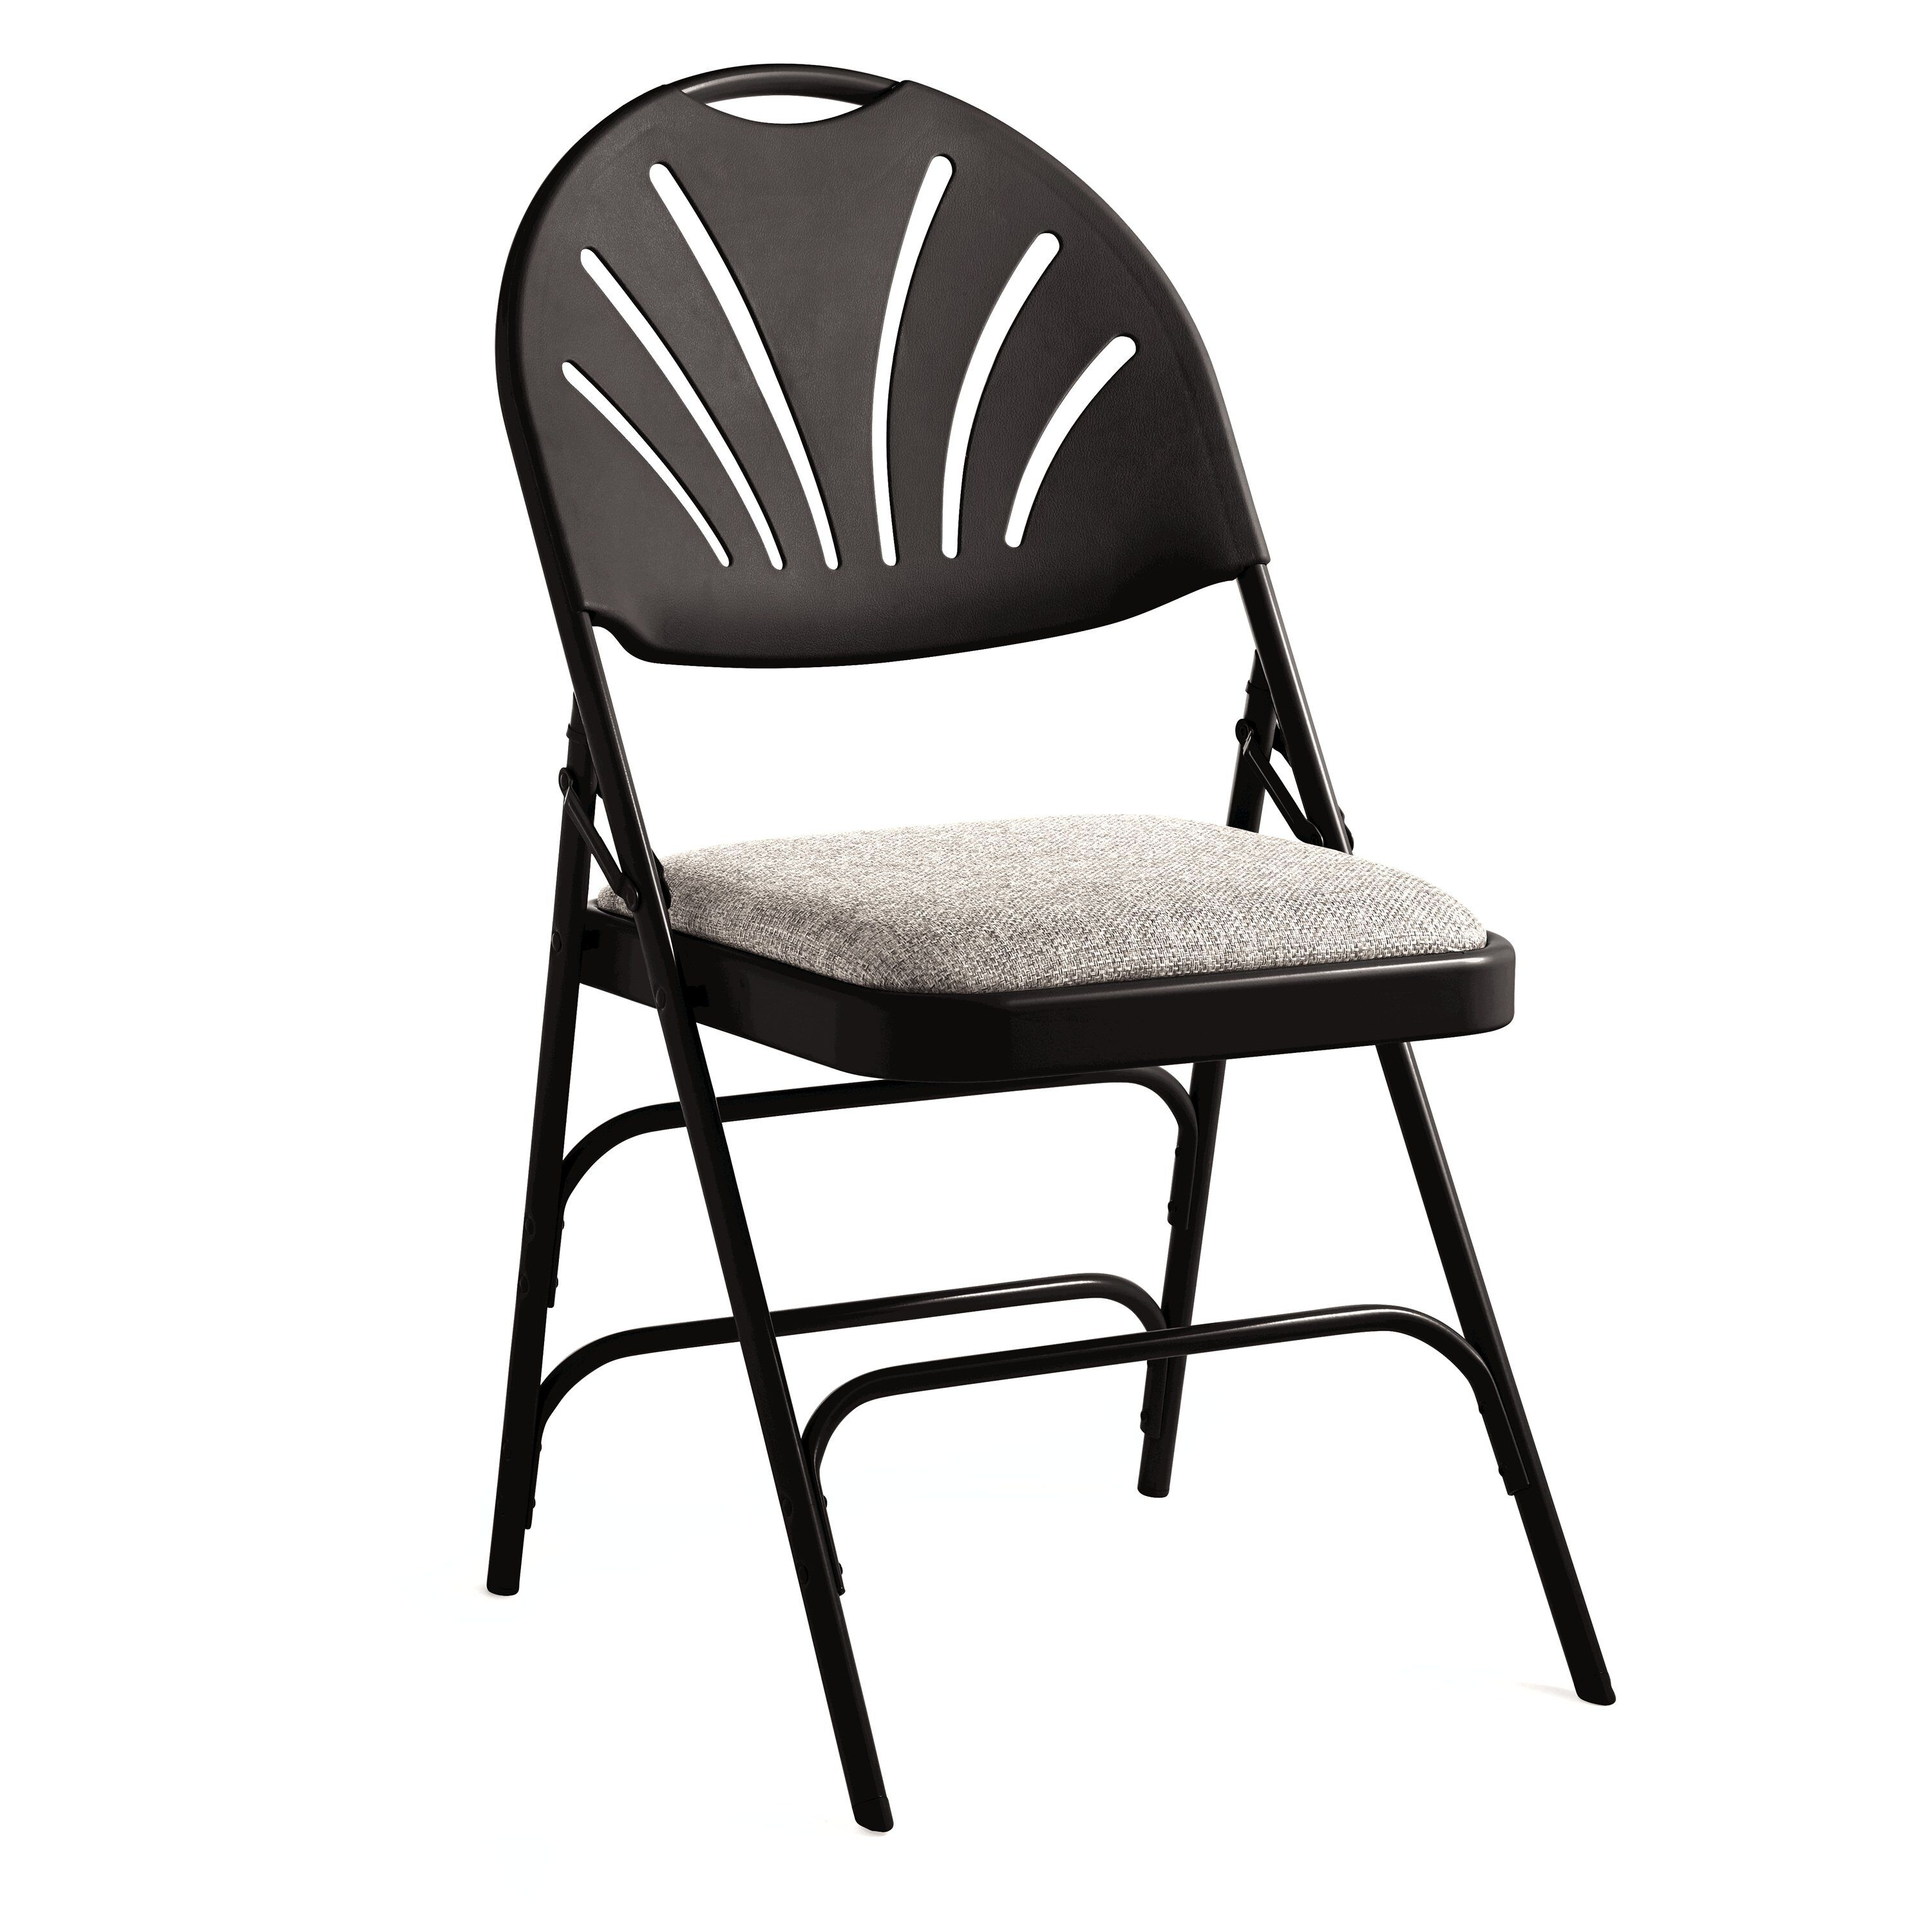 folding chair fabric cheap table and covers for parties samsonite xl fanback steel case 4